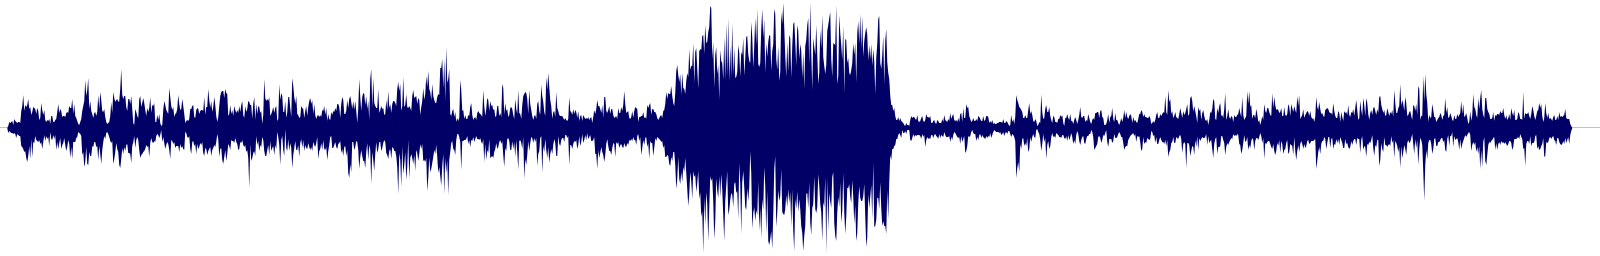 waveform of track #143748